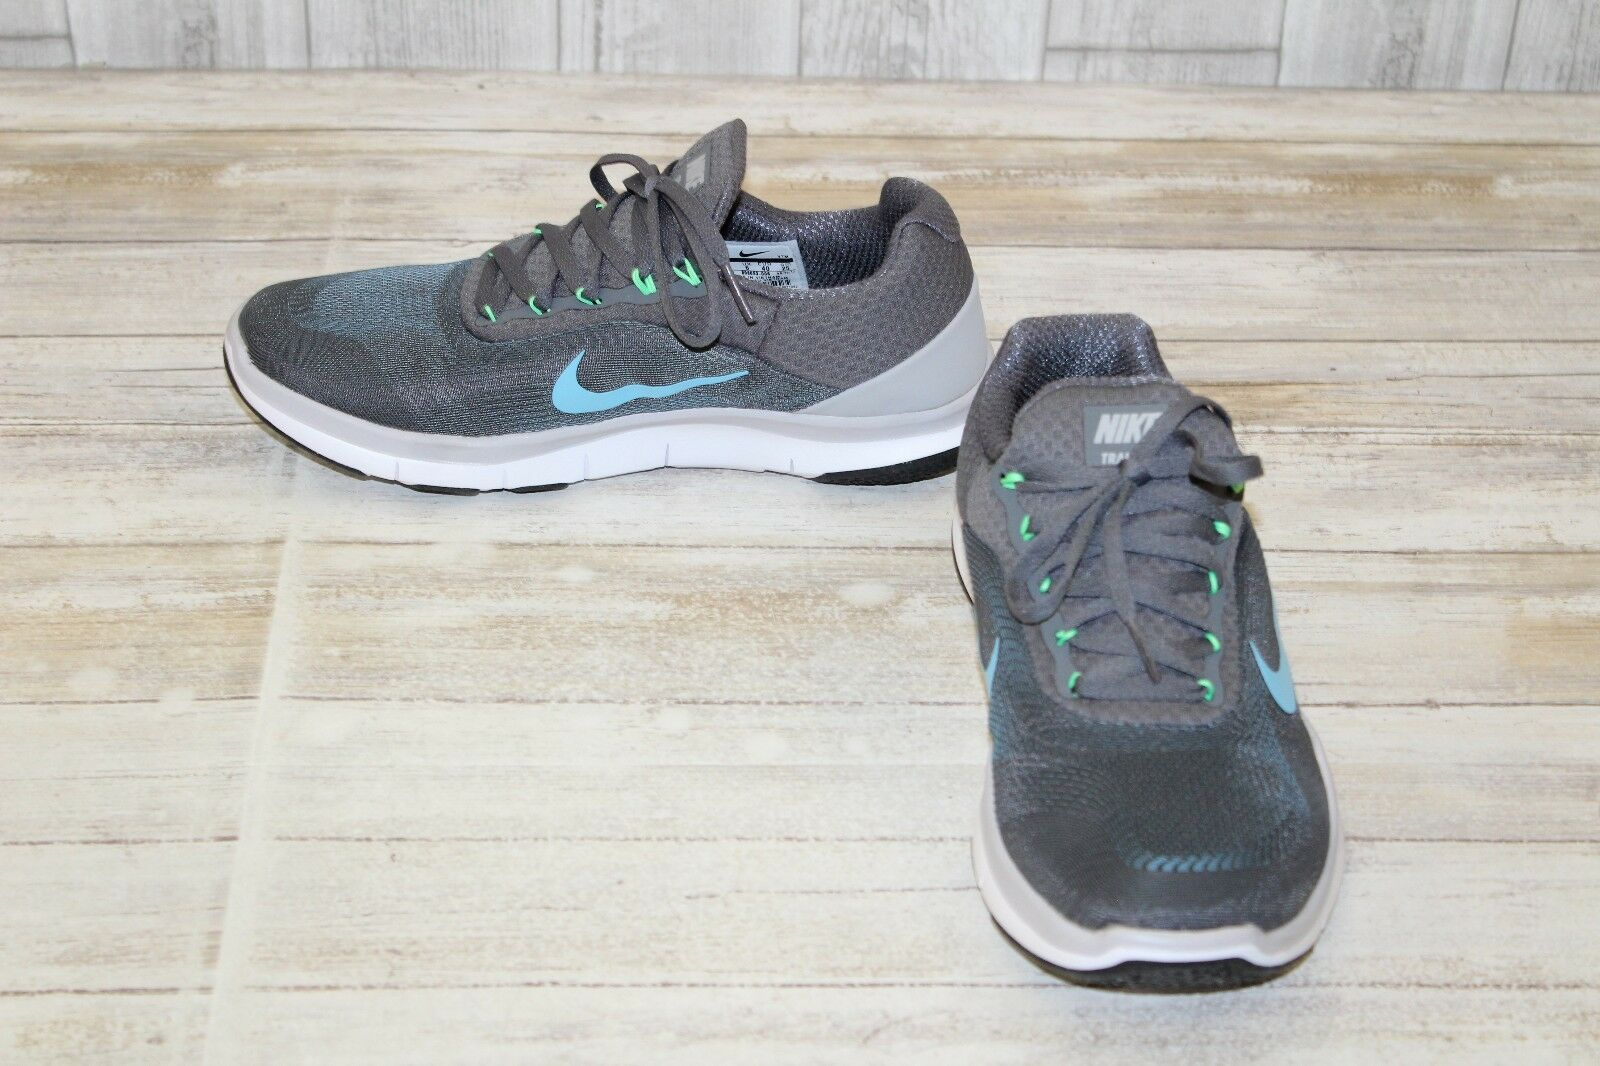 Nike Free Trainer v7 Athletic Shoes, Men's Size 7, Grey